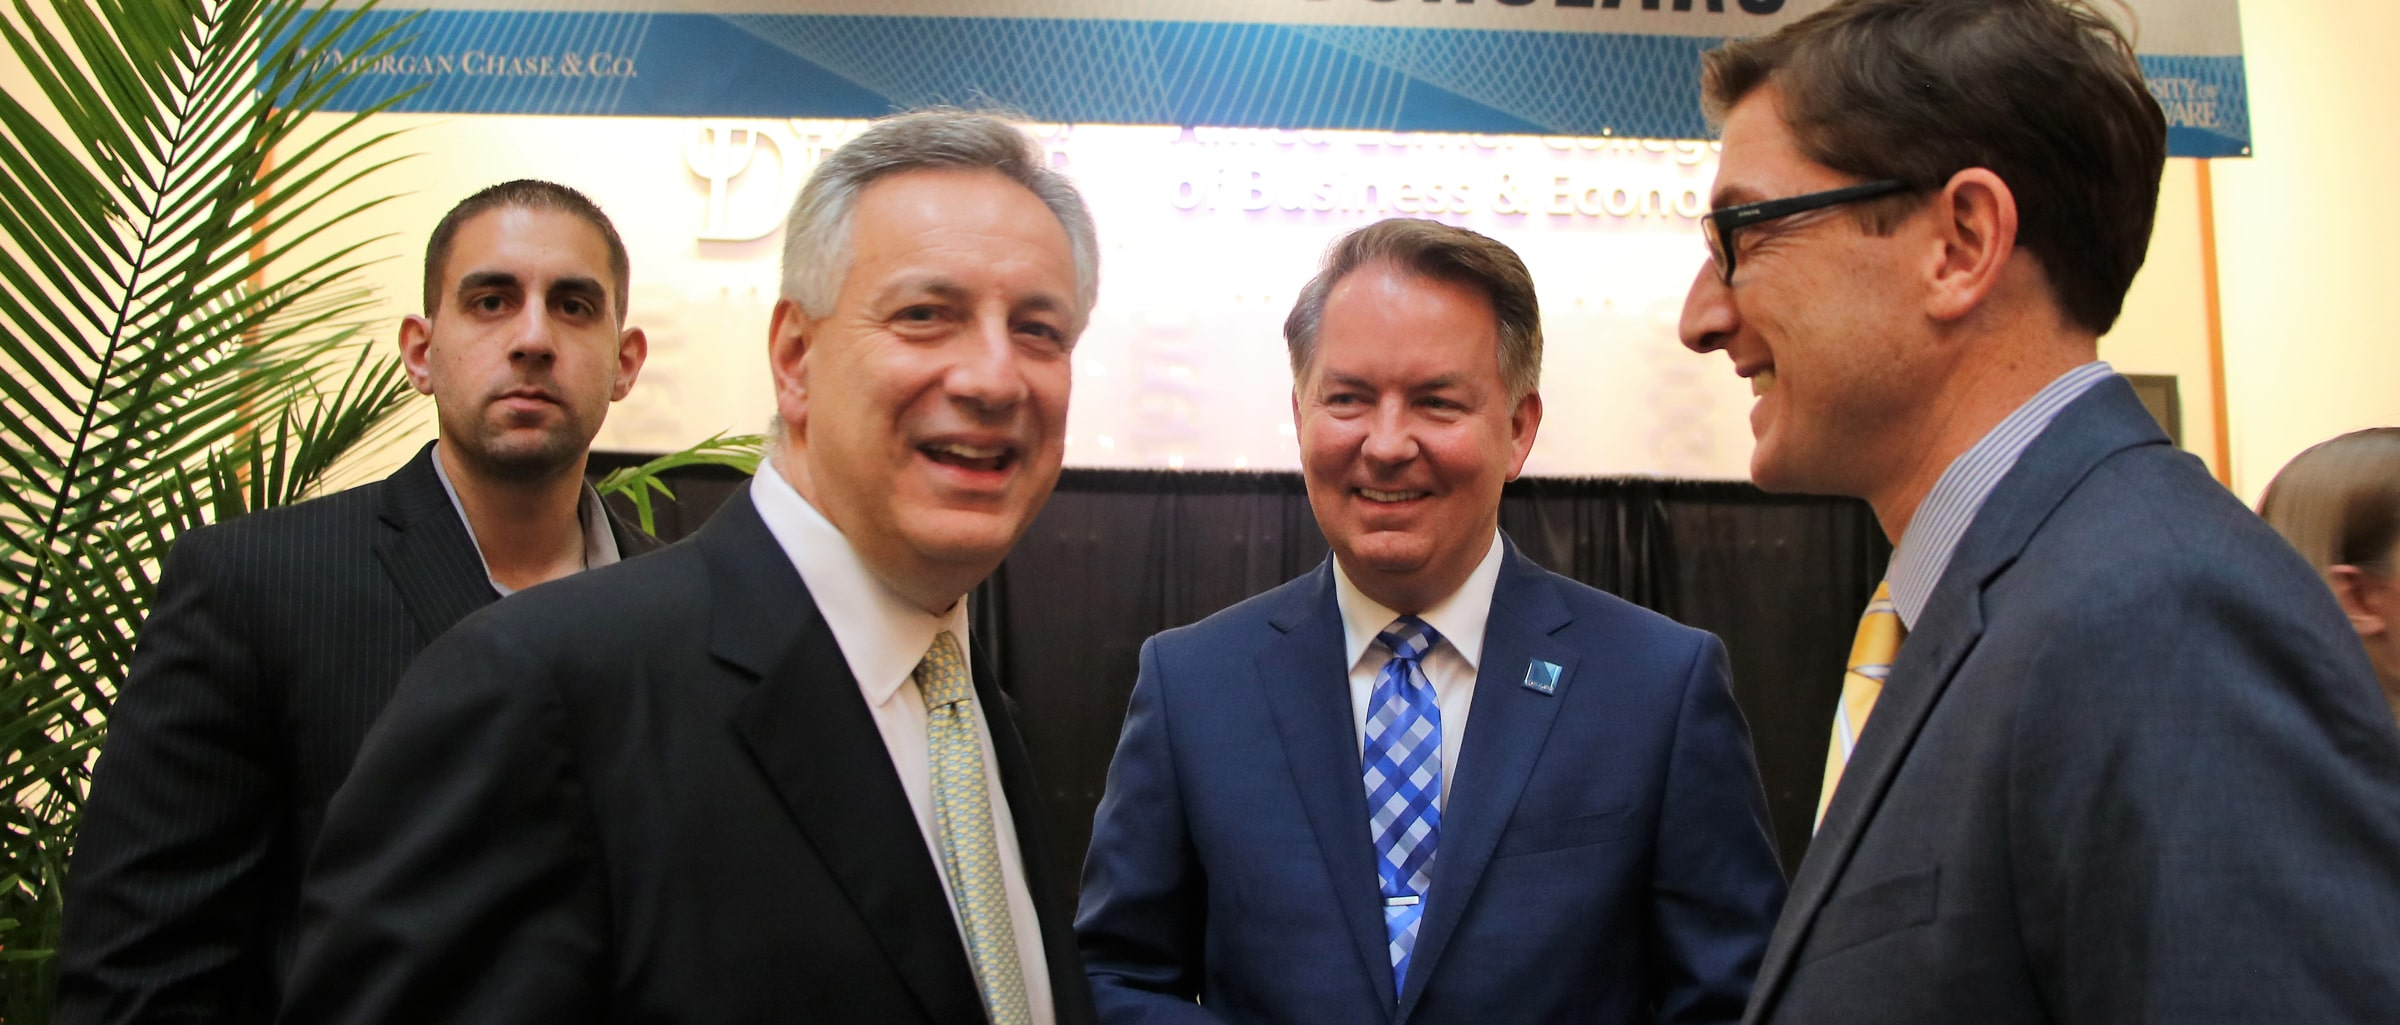 UD Presidentent Assanis along with JPMorgan Chase's James Mahoney and CDS associate director Brian Freedman